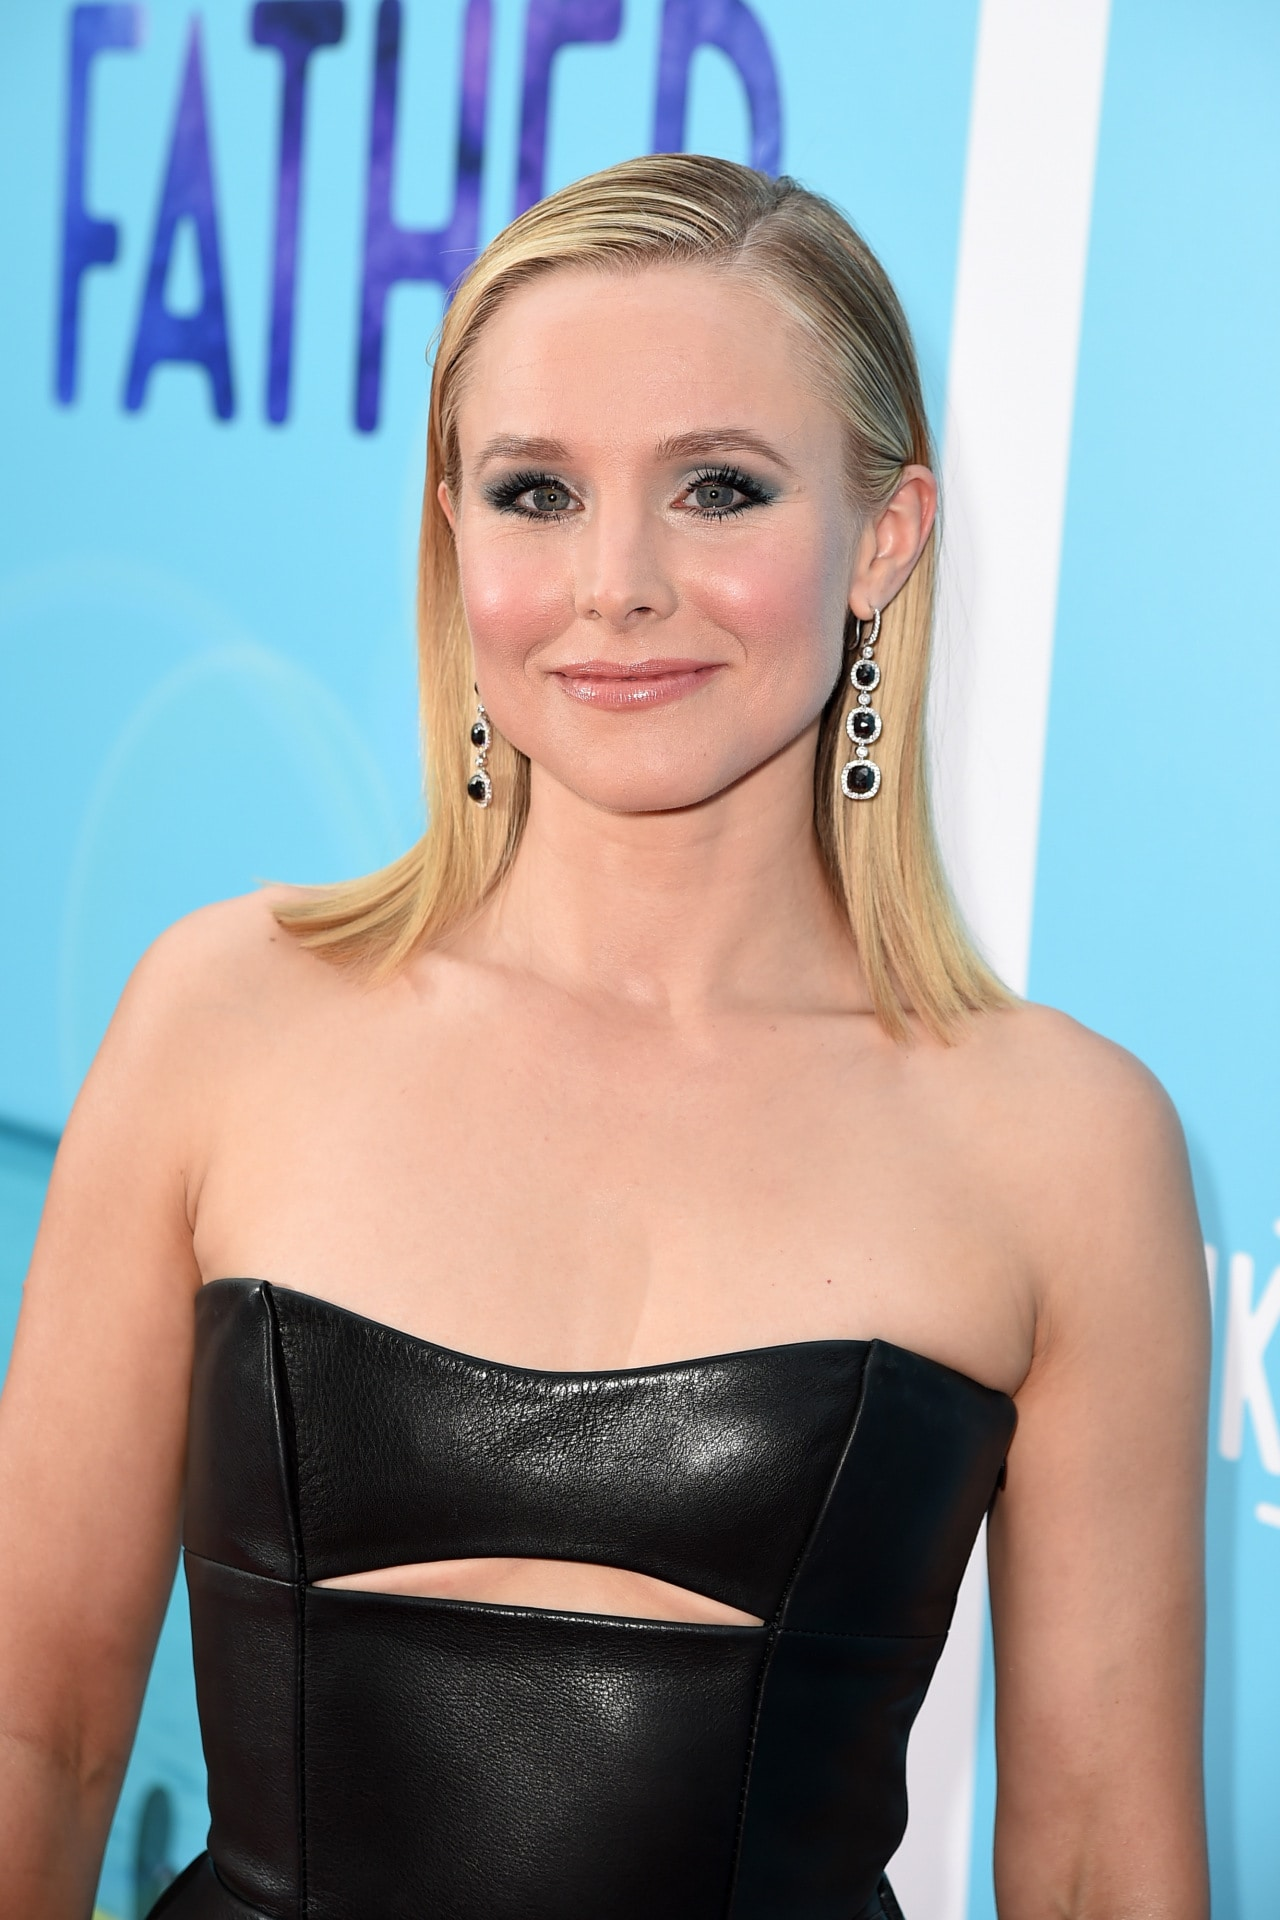 Kristen Bell is set to reprise her role in a Veronica Mars reboot